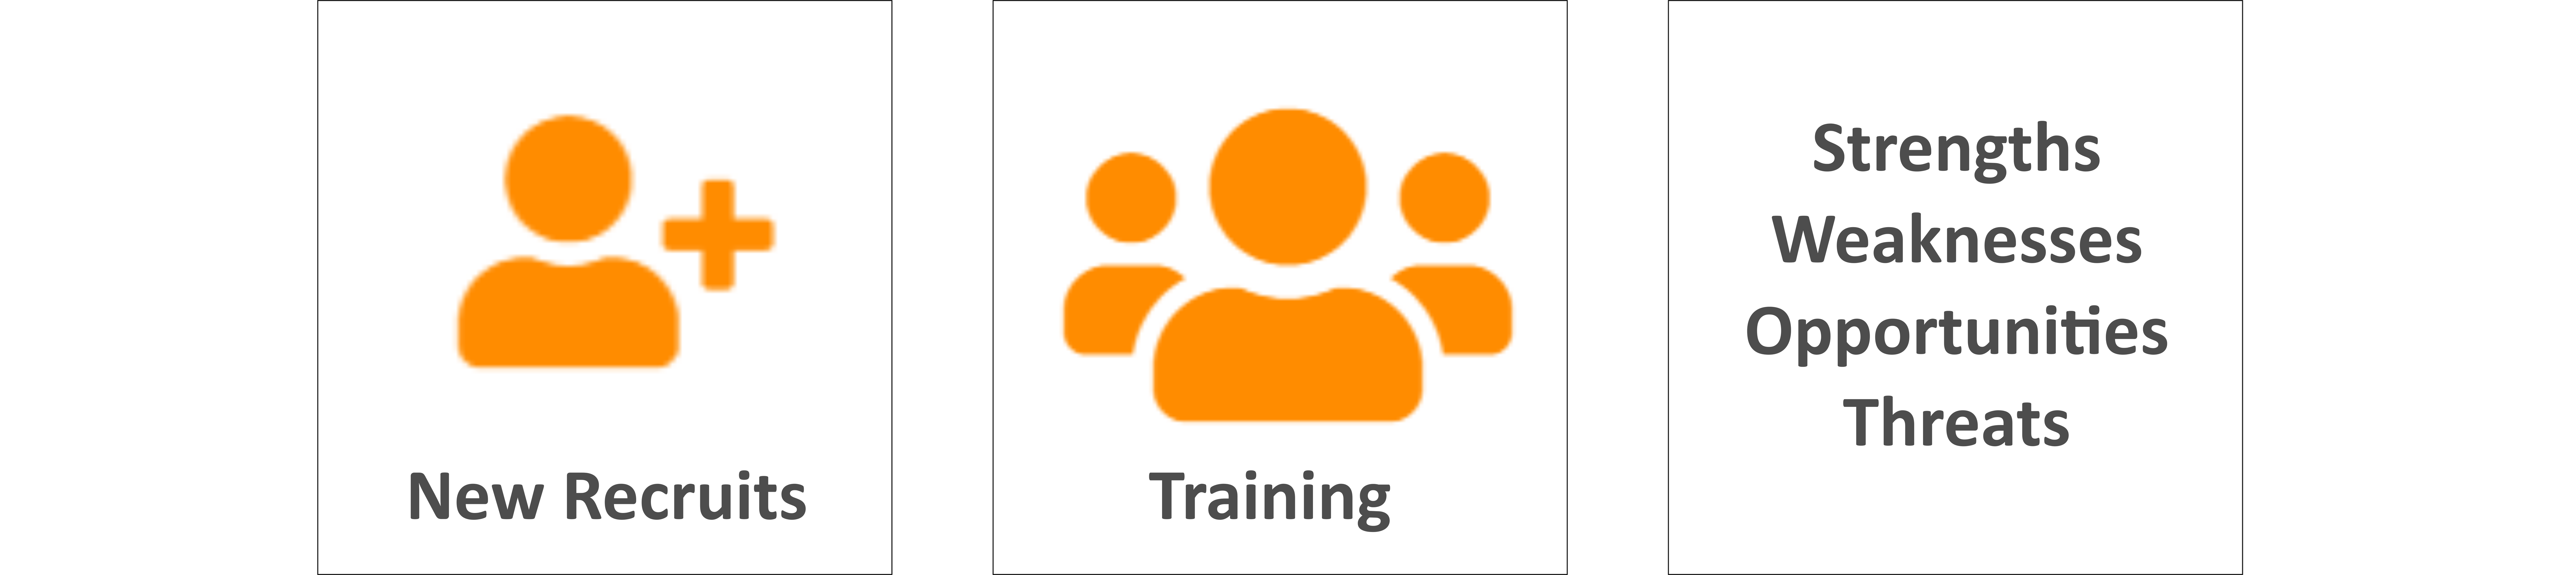 Focal Research - Training New Recruits Social Housing Sector